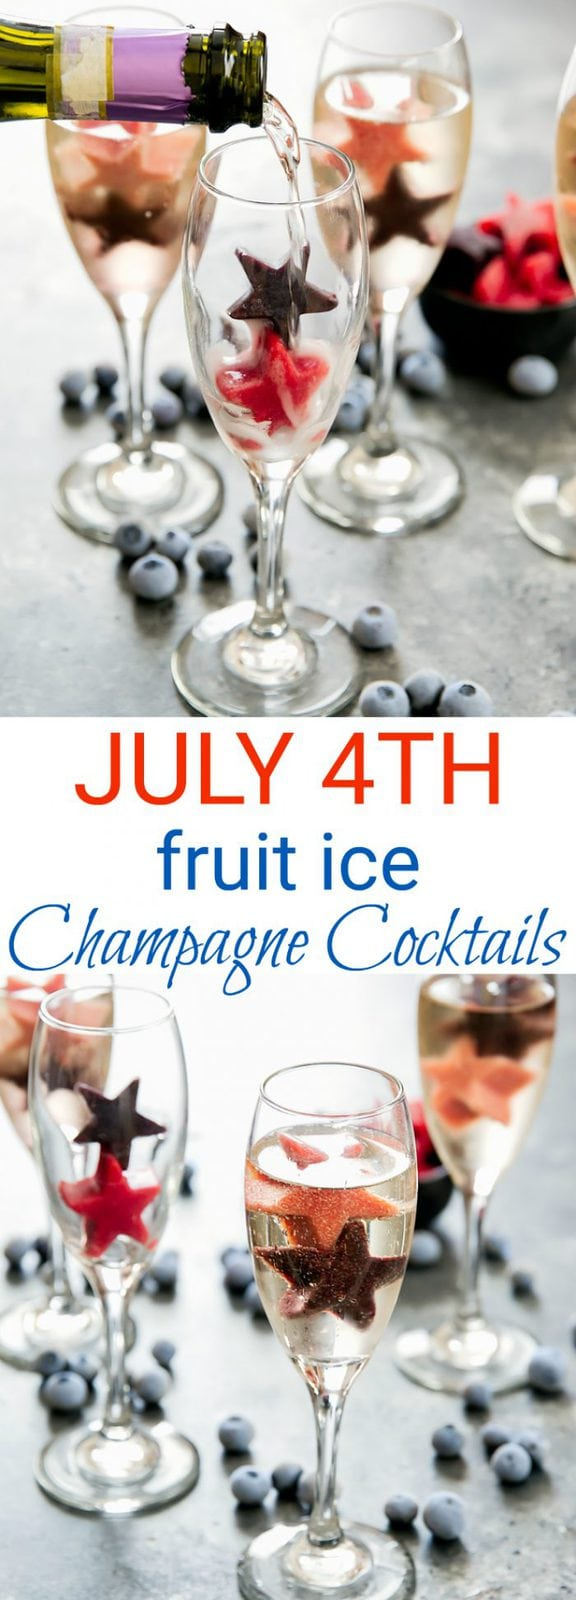 July 4th Fruit Ice Champagne Cocktails